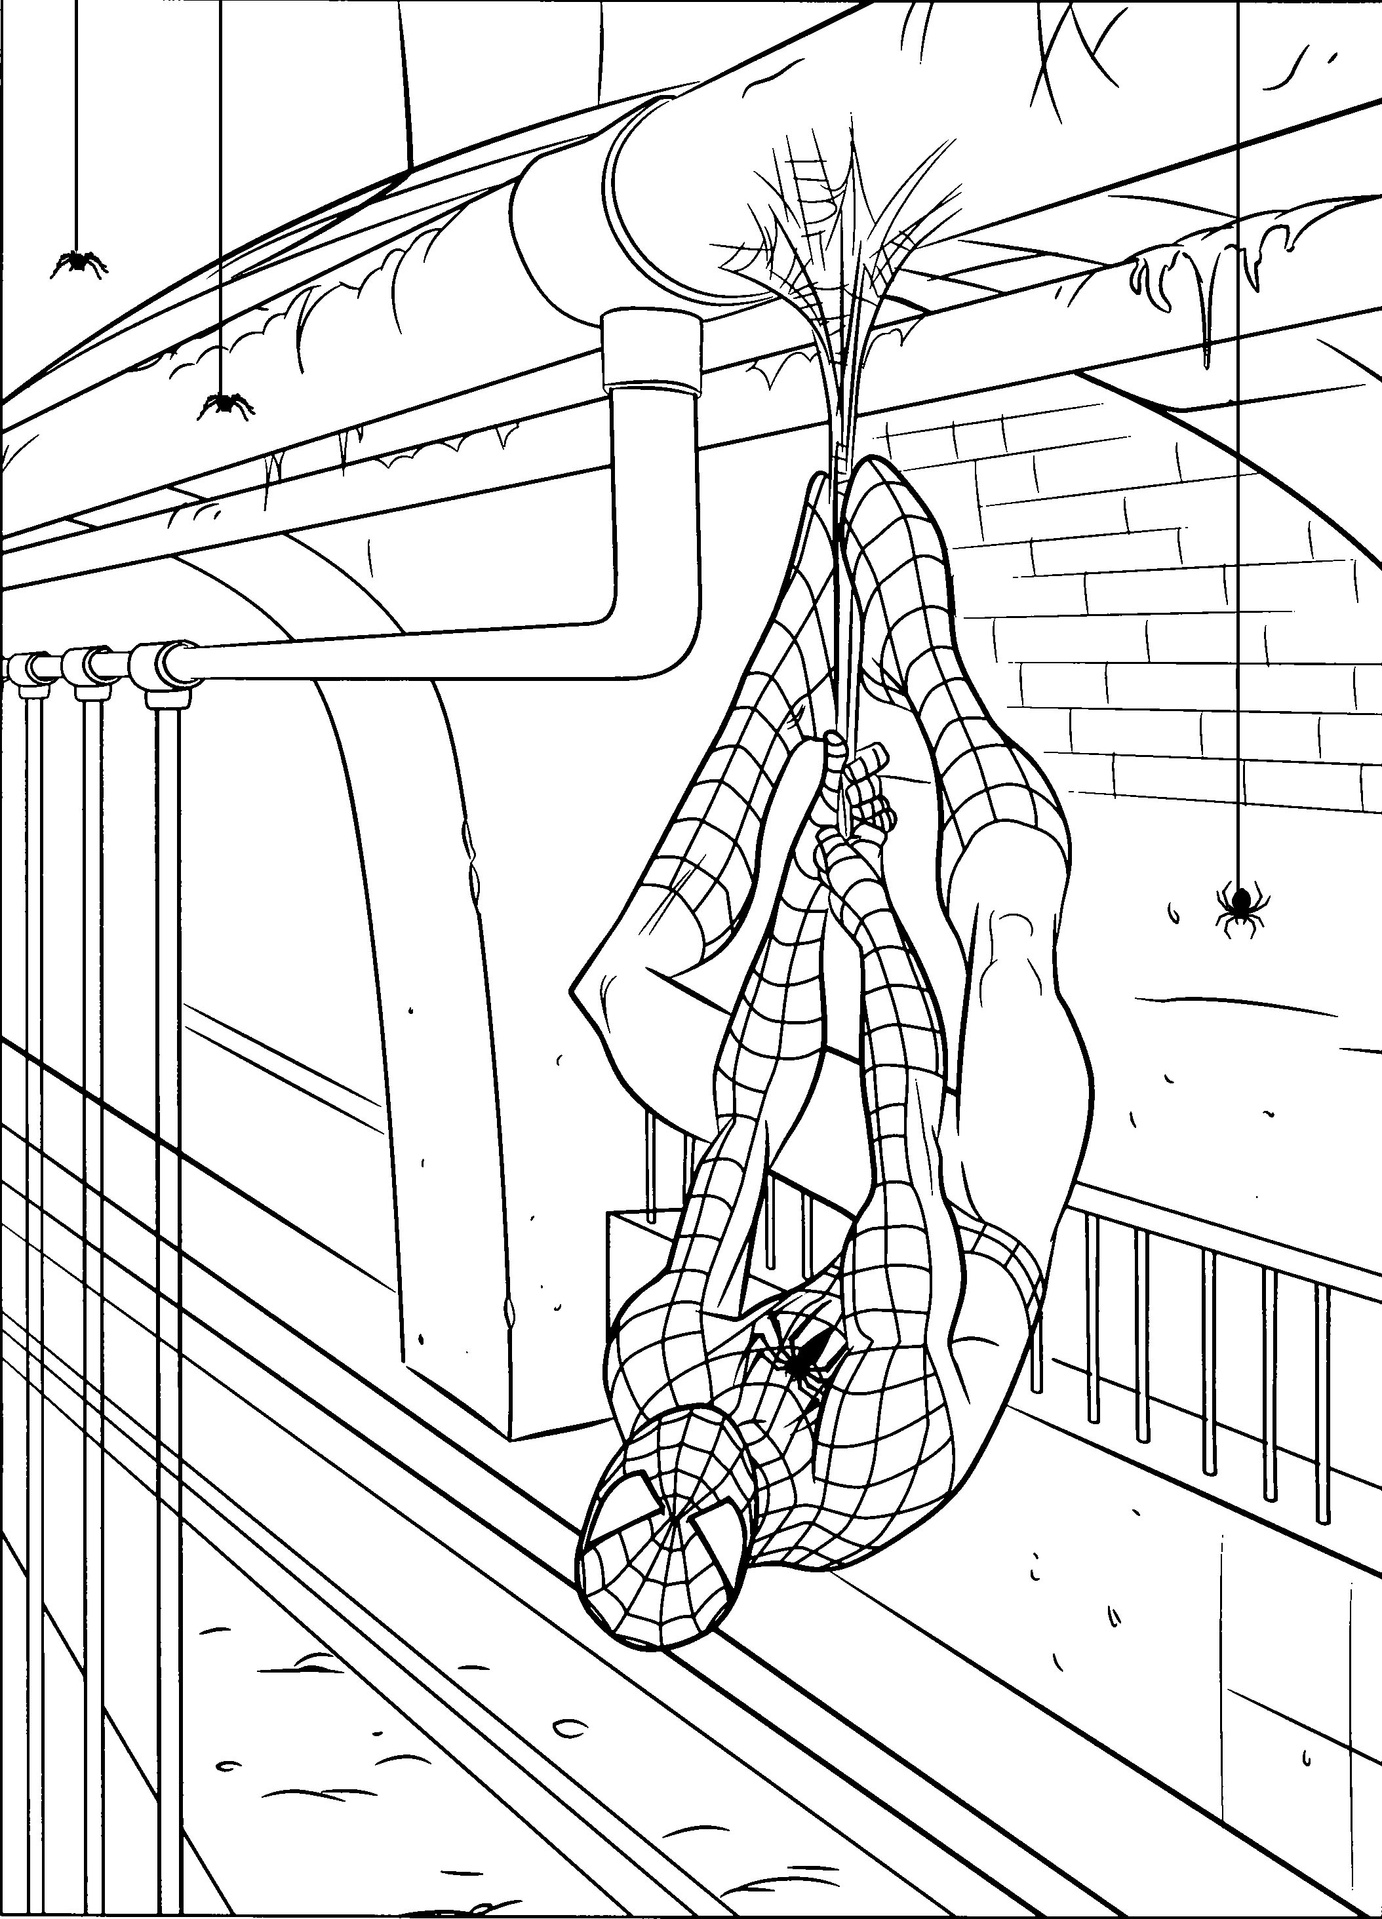 coloring sheet spiderman coloring pages coloring coloring pictures of spiderman sheet coloring spiderman coloring pages